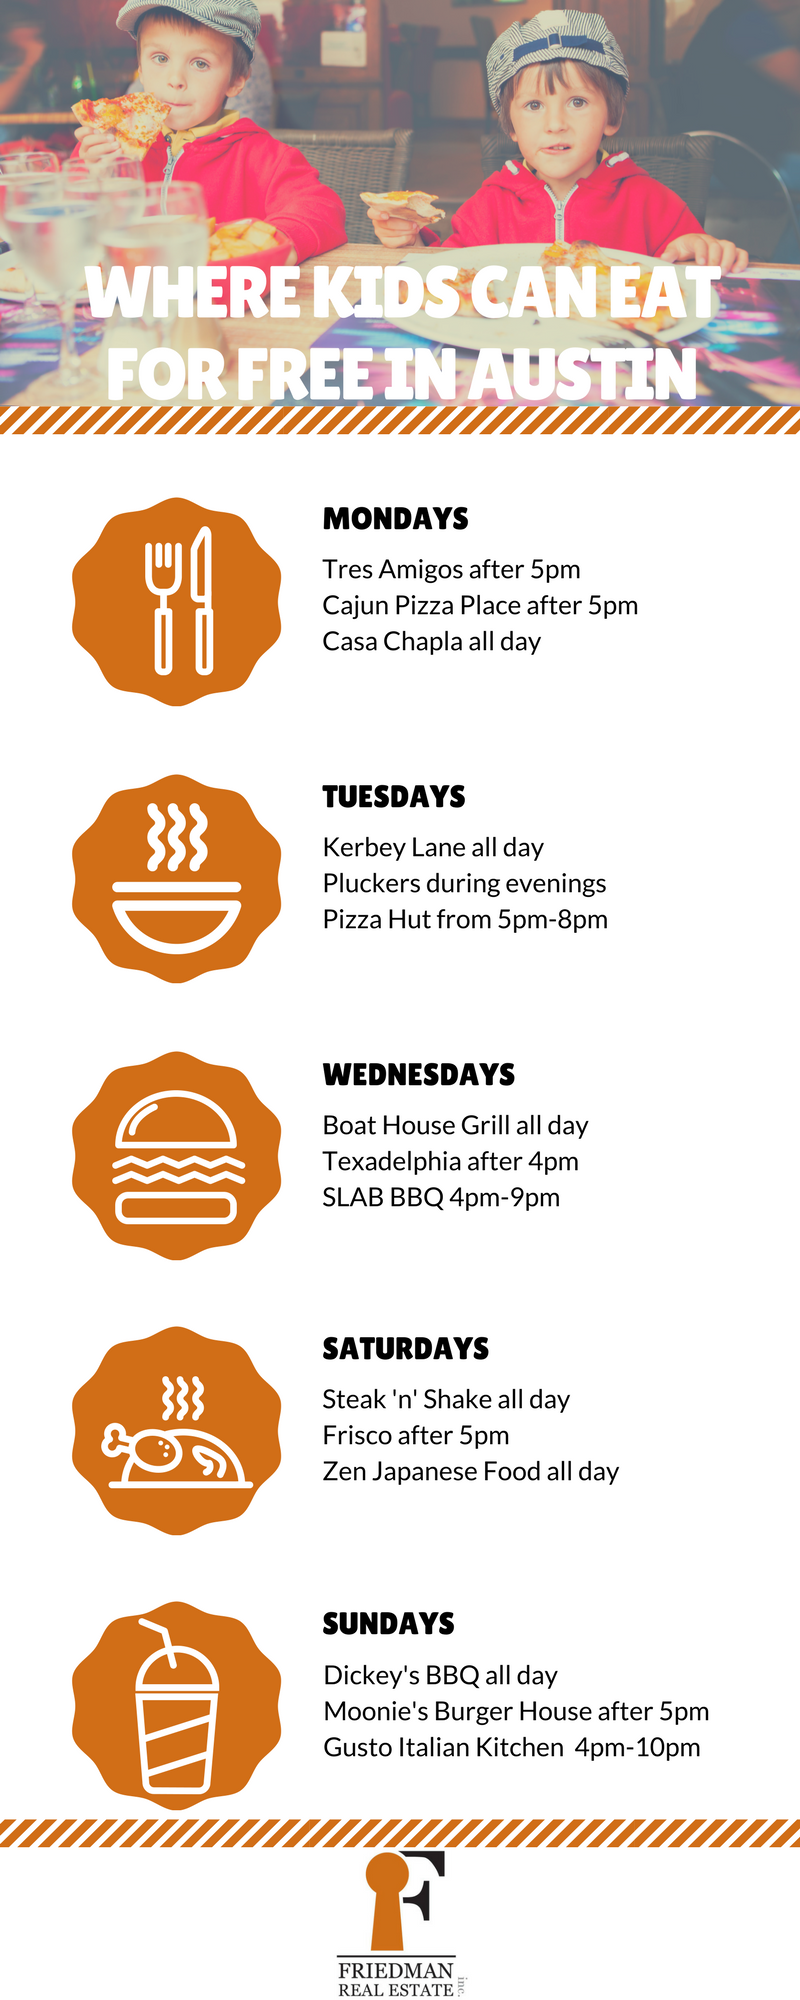 where-kids-eat-free-in-austin-infographic